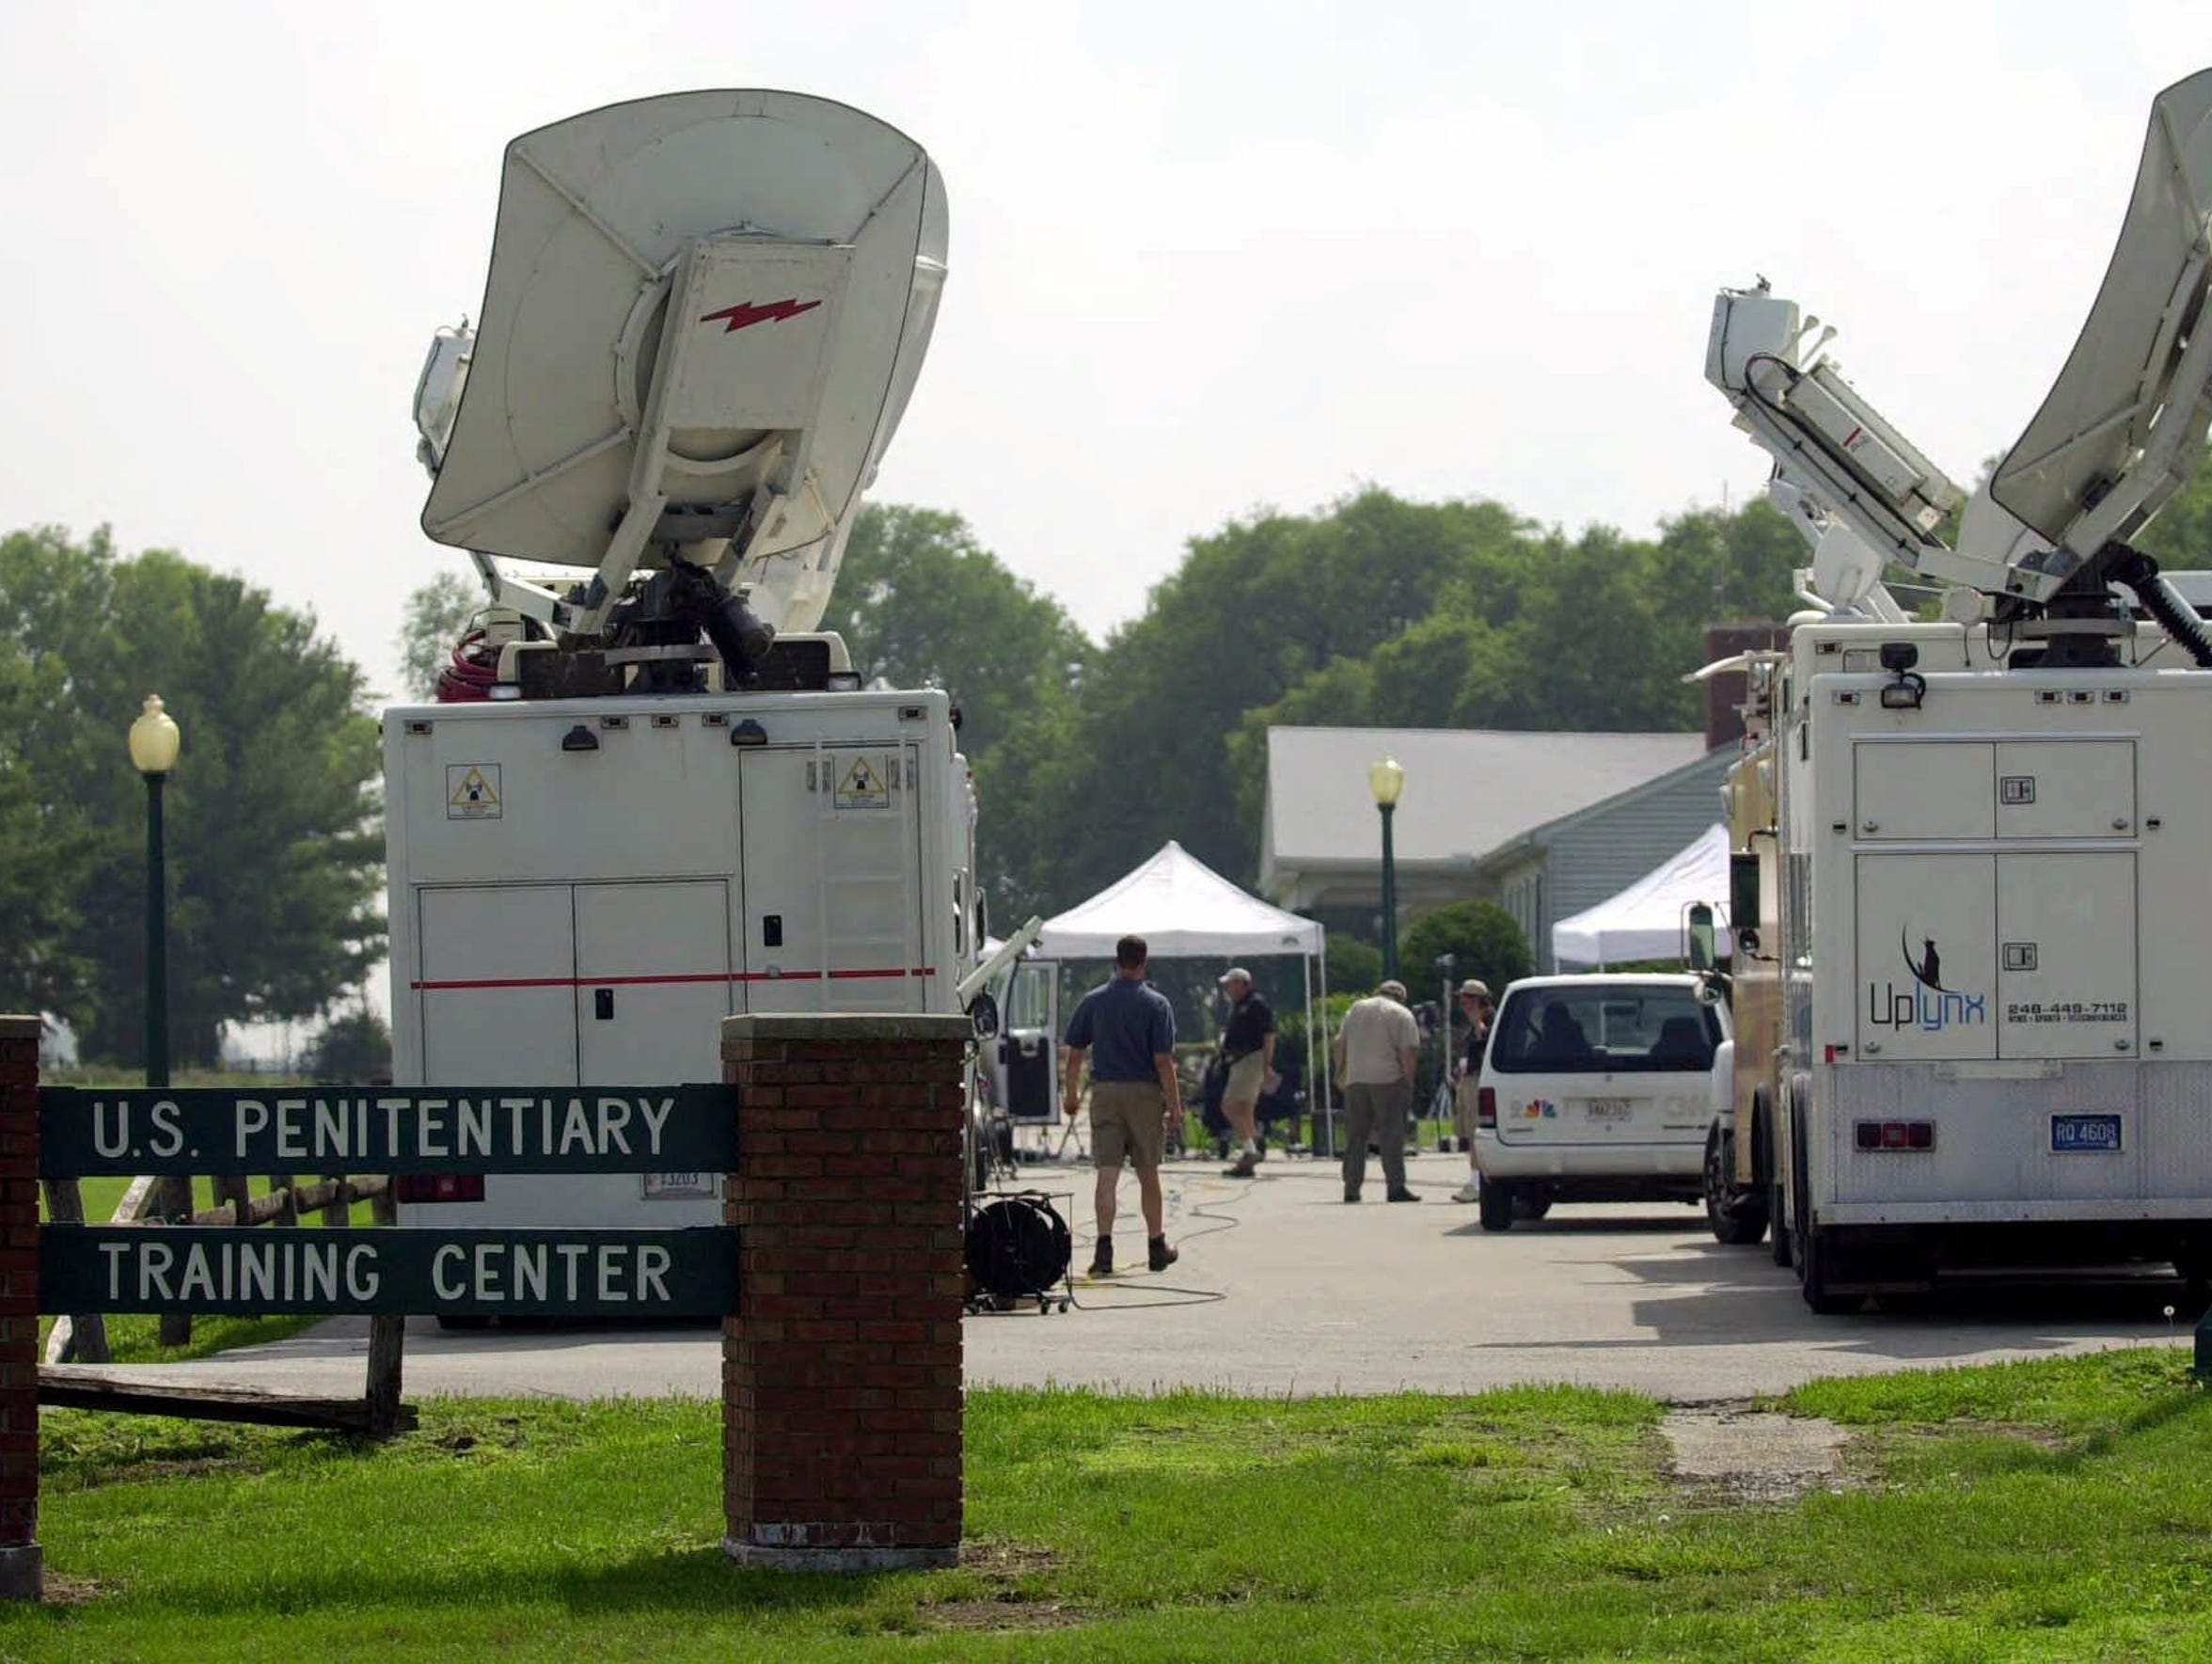 Satellite trucks arrive in the parking lot of the federal